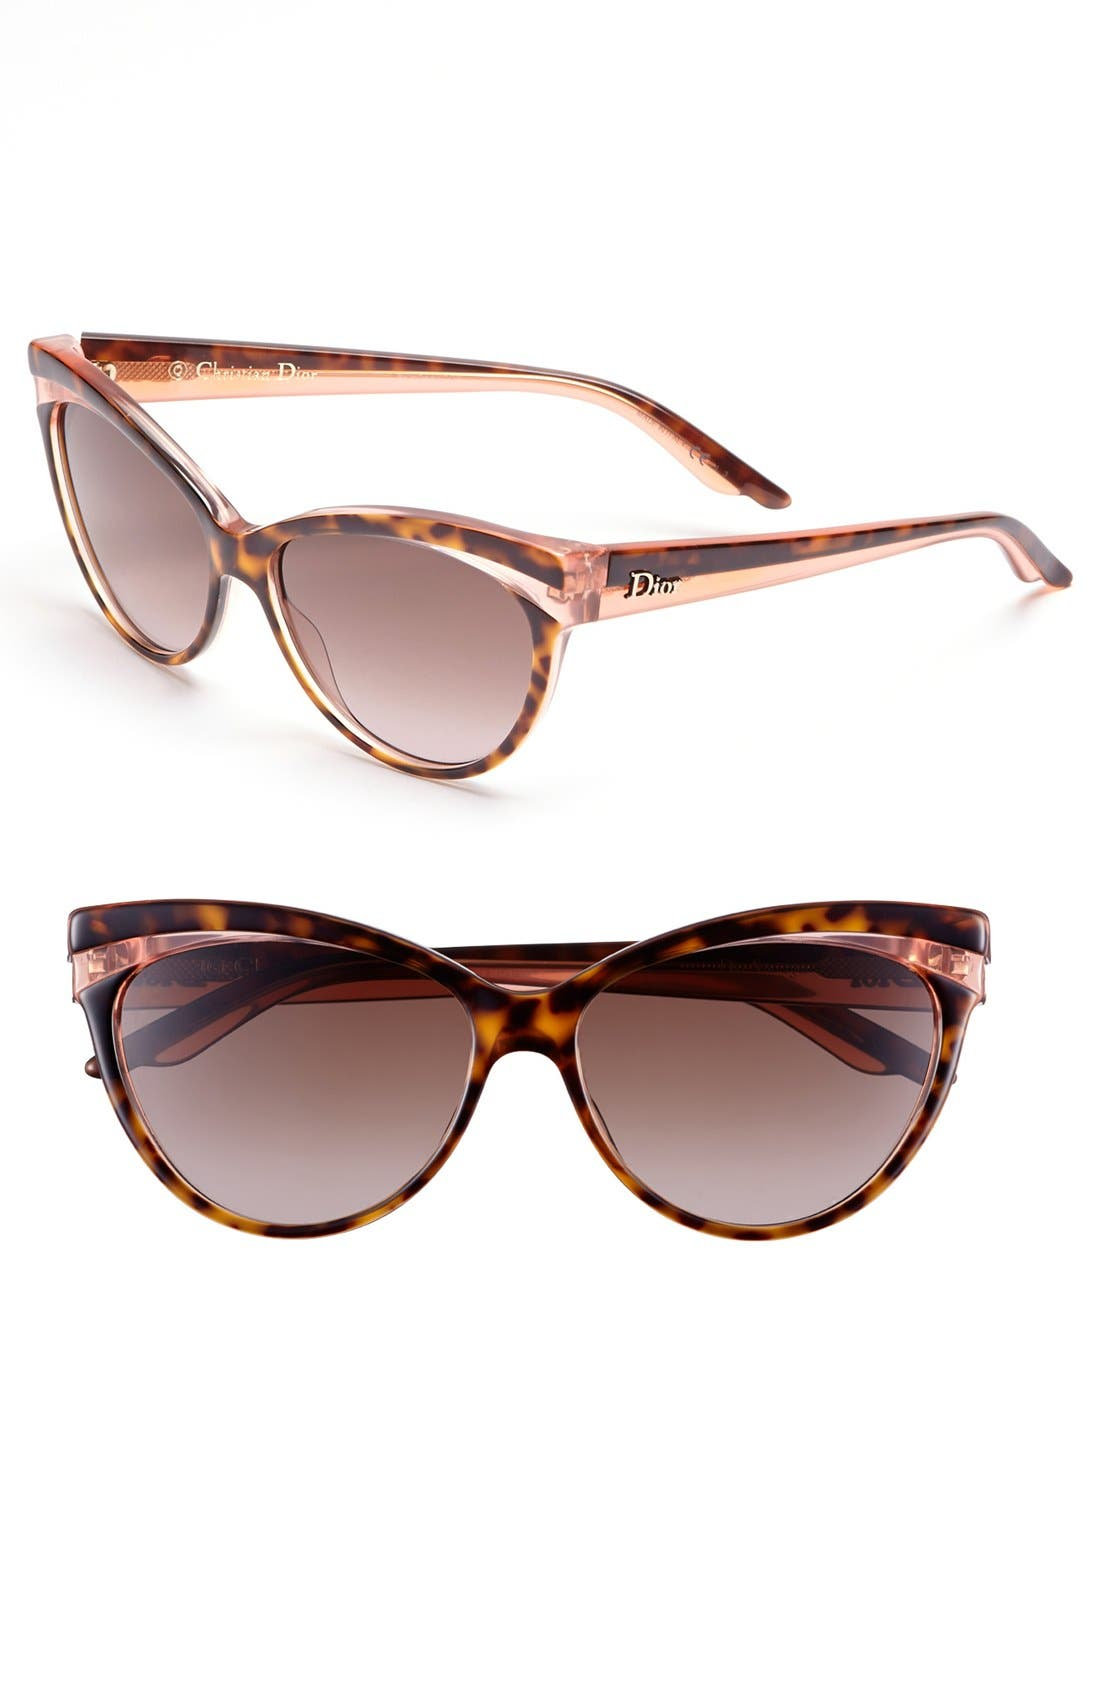 Main Image - Dior 'Sauvage' 56mm Retro Sunglasses